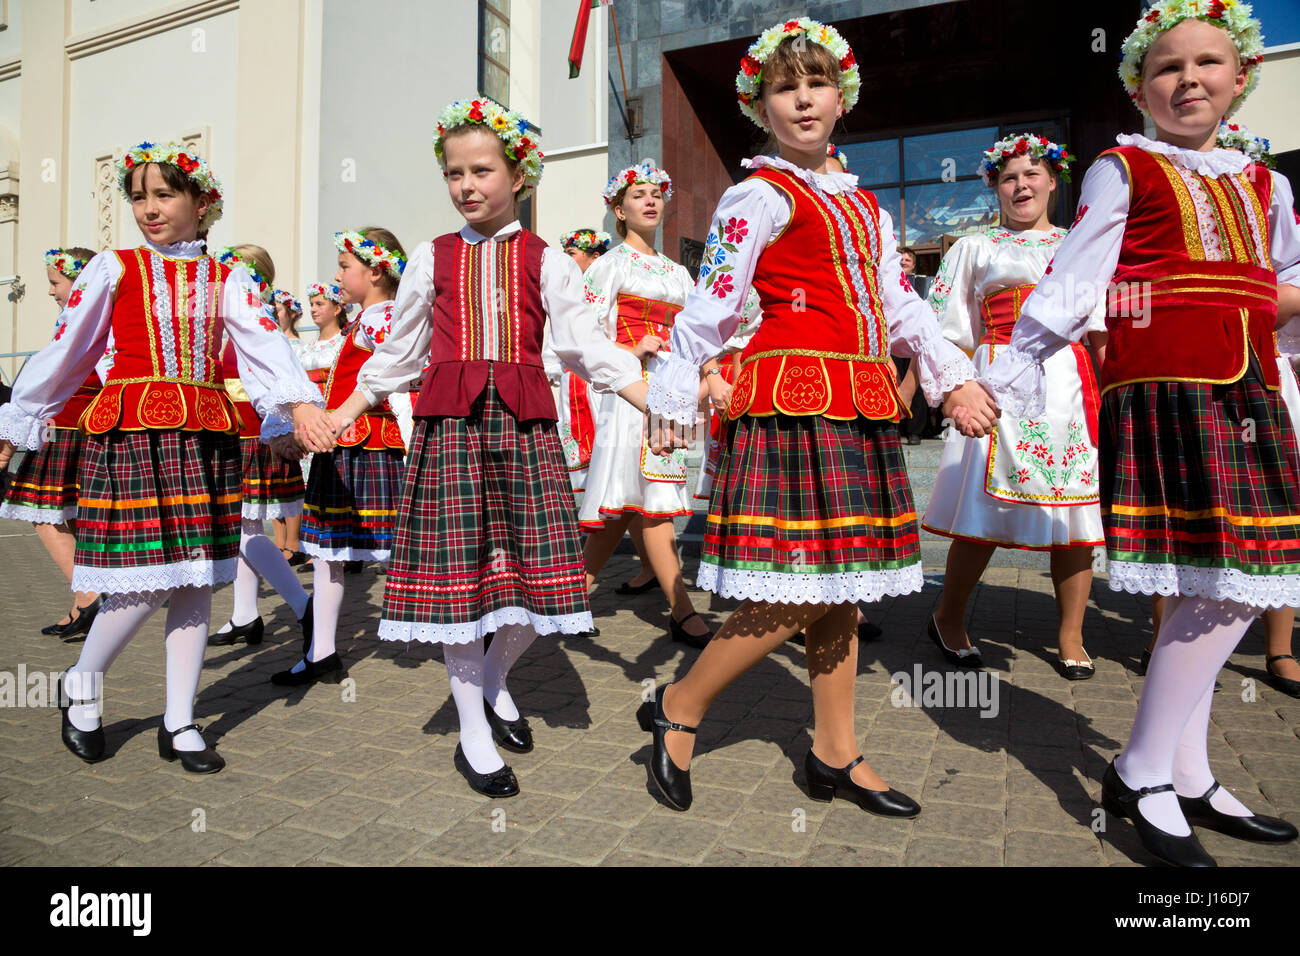 Belarusian people celebrate the City day of Minsk on central square of the city on 13 of September 2014, Republic - Stock Image